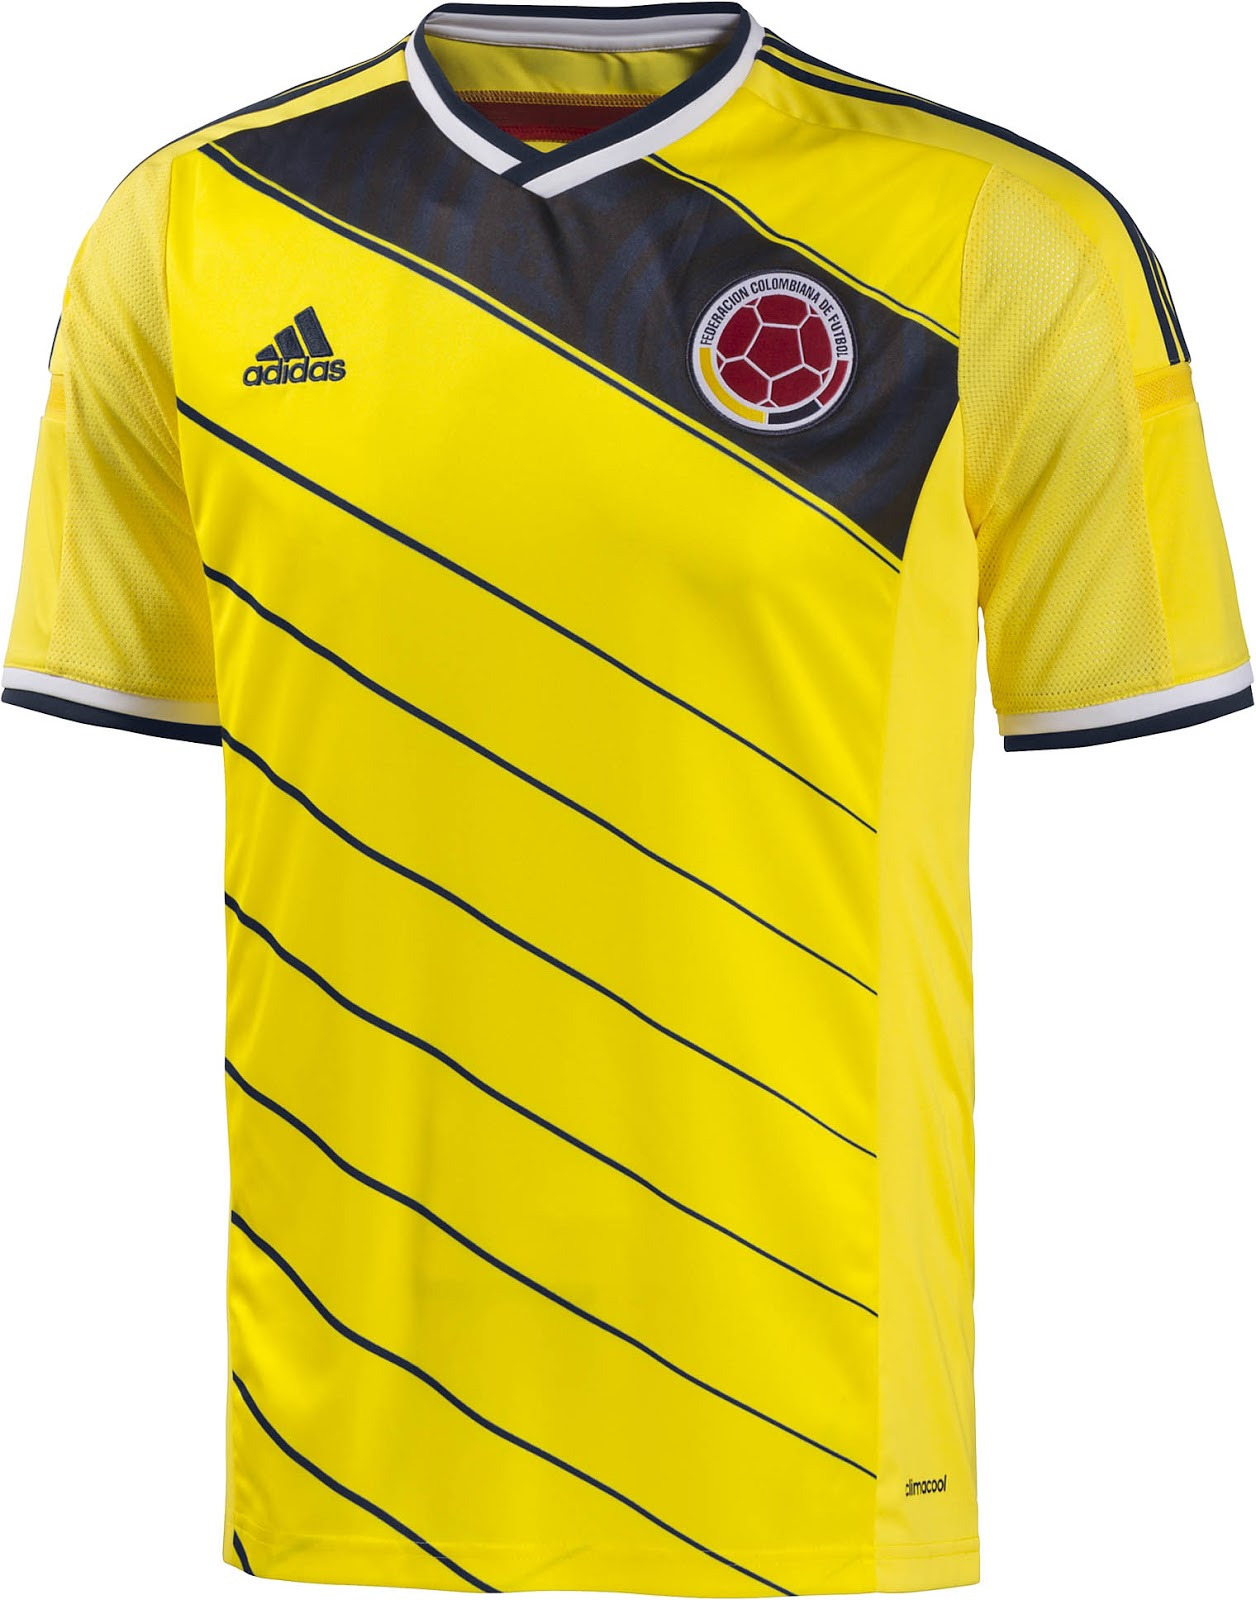 jersey colombia 2014